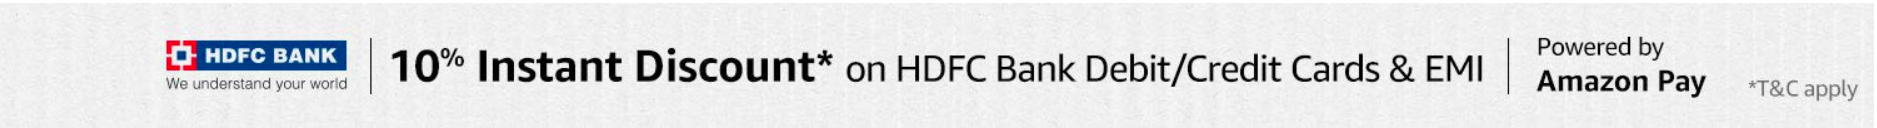 amazon prime day hdfc bank offers